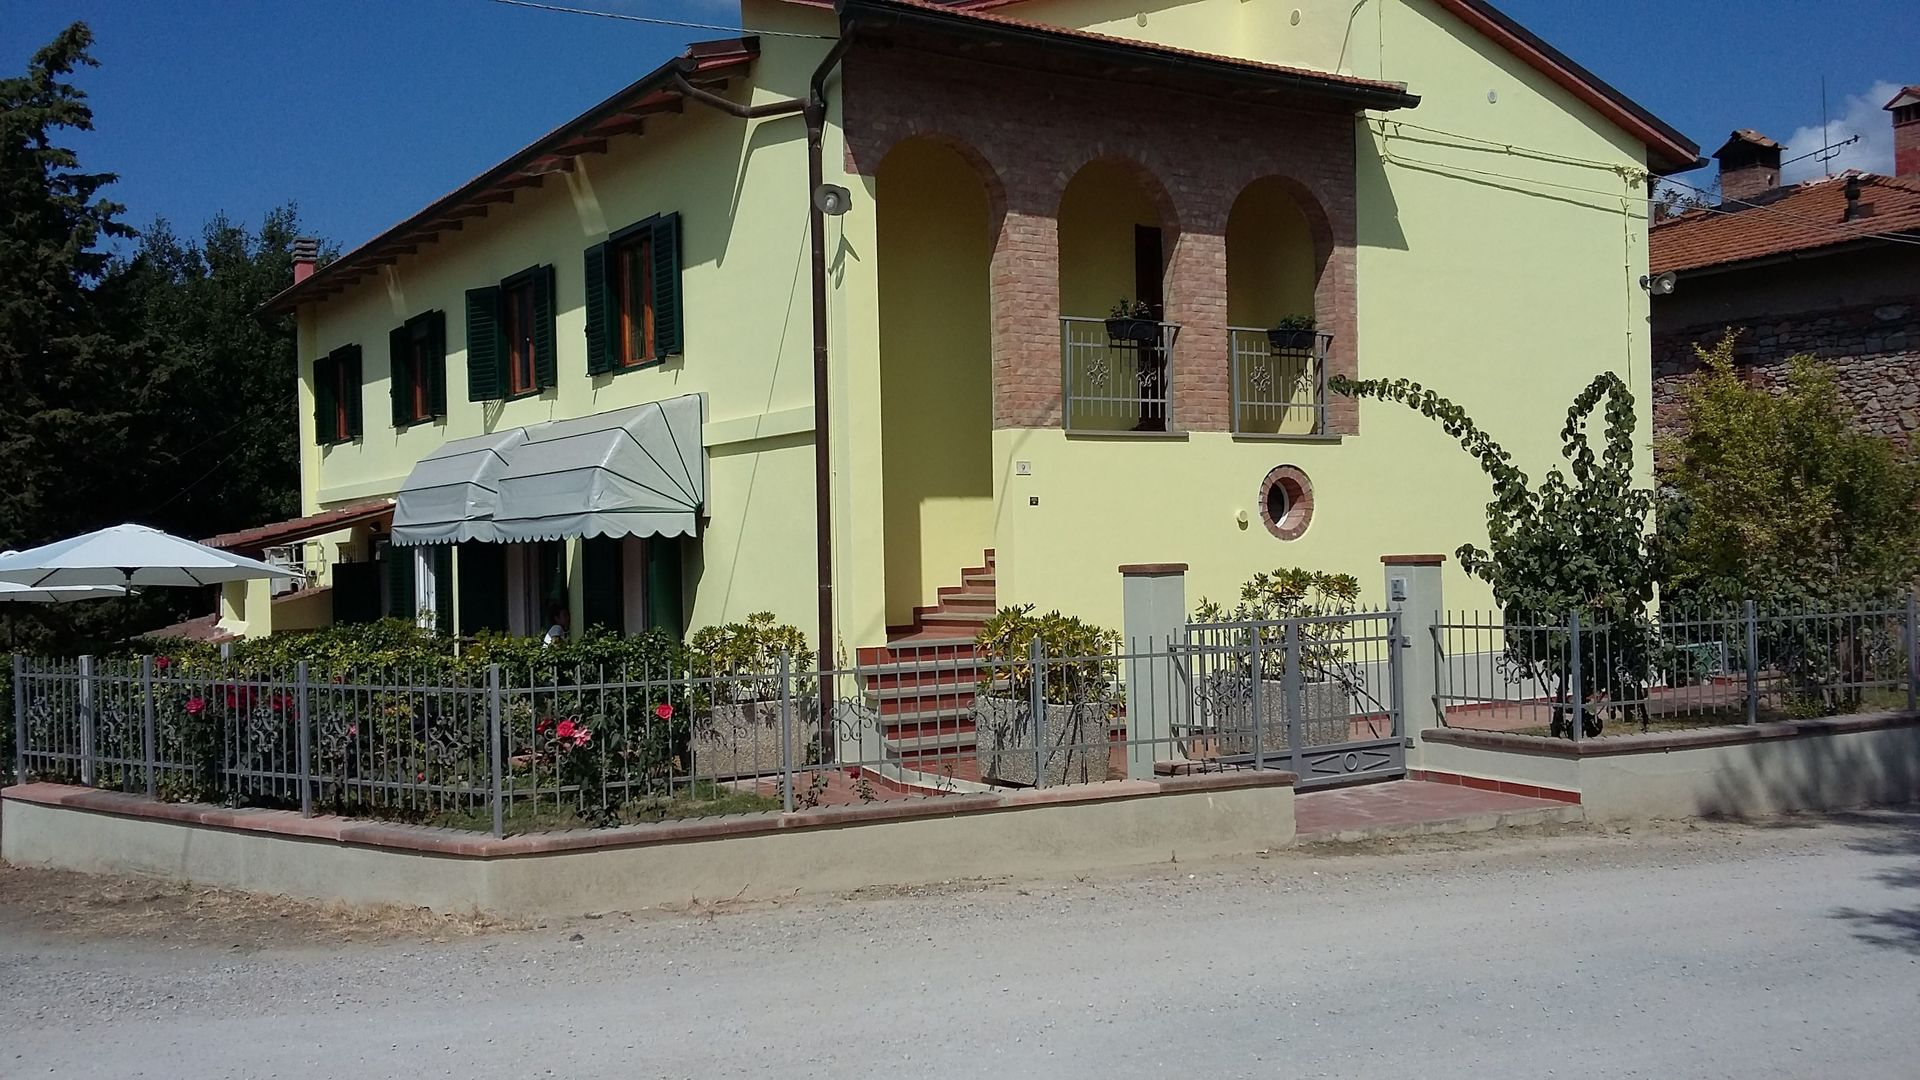 Beauty At Home Castelfiorentino villa benedetta: villa that sleeps 12 people in 6 bedrooms